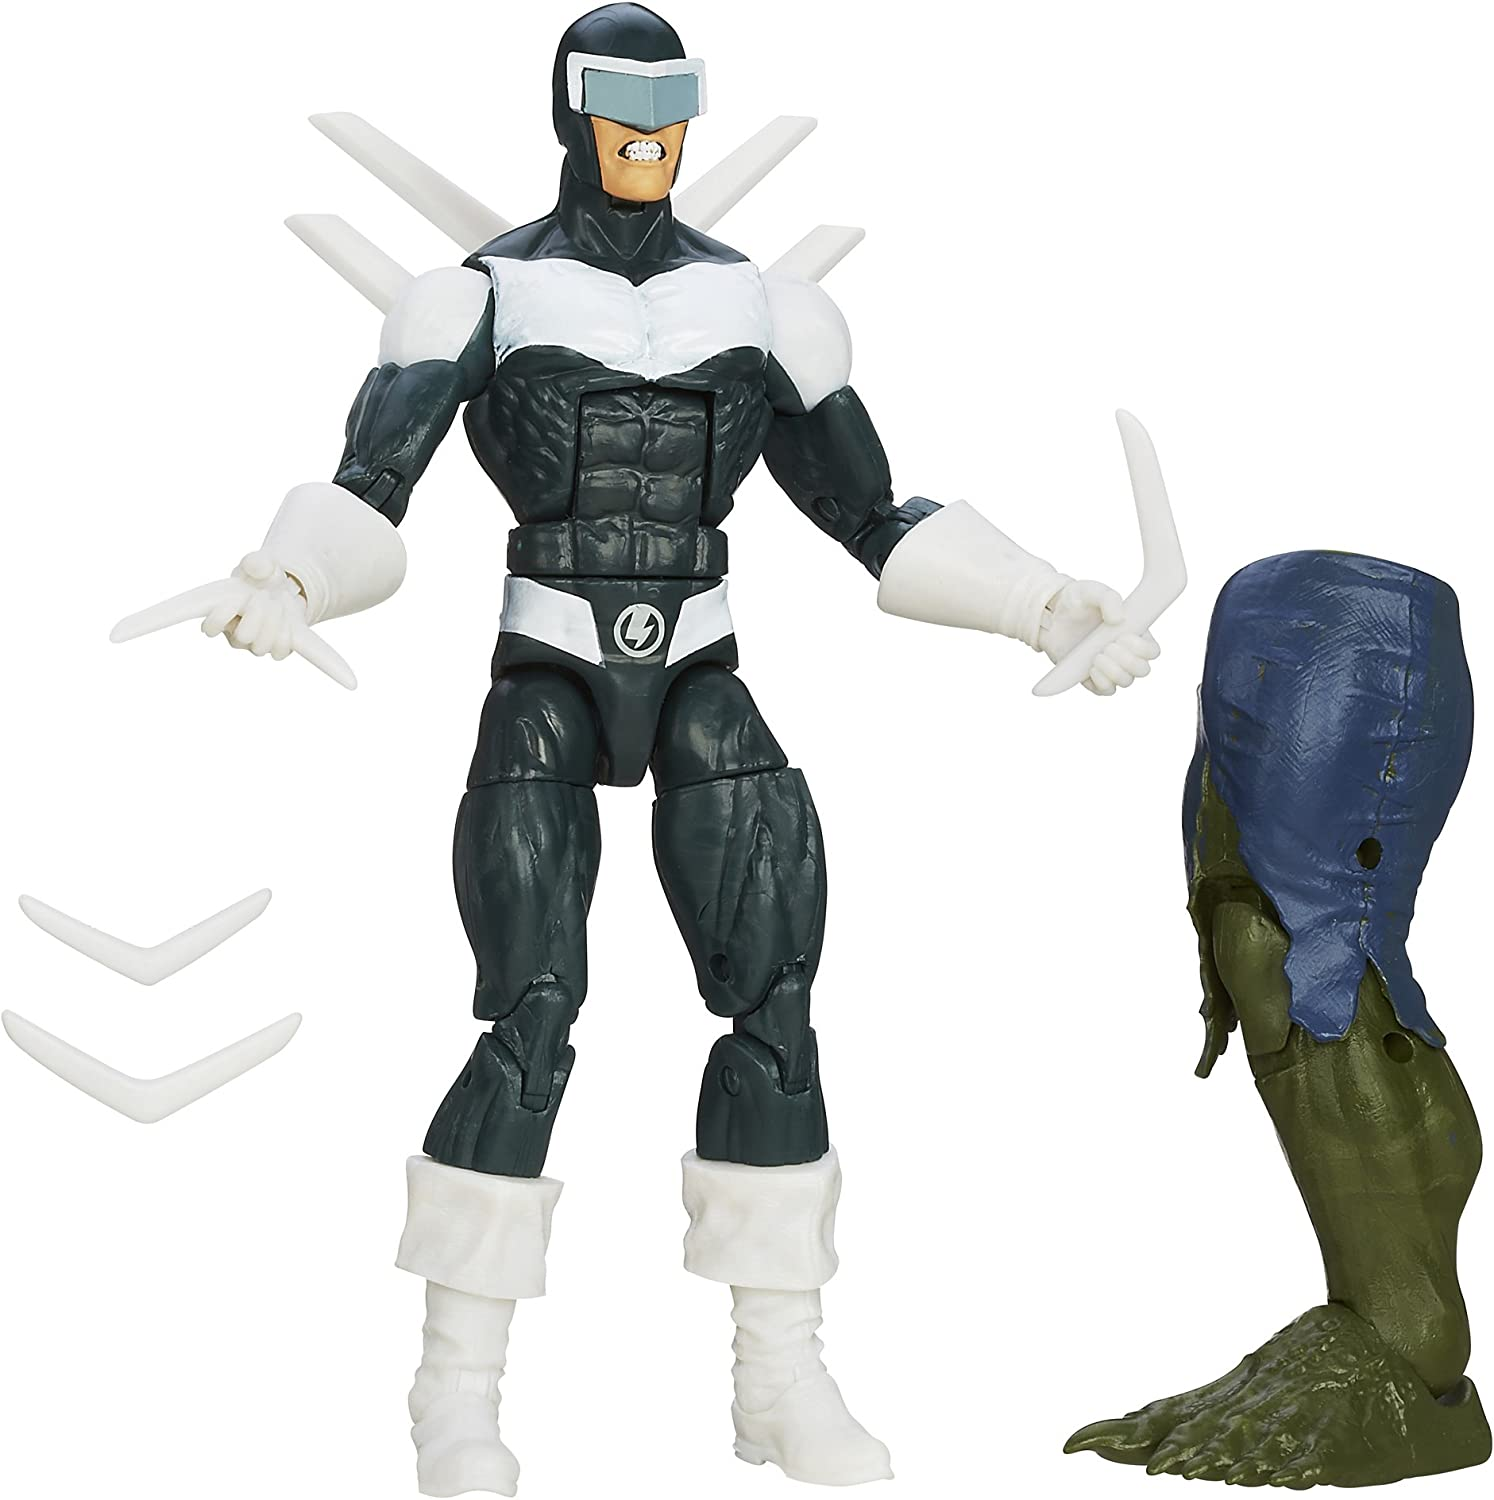 SpiderMan Marvel The Amazing 2 Marvel Legends Infinite Series Deadliest Foes Action Figure Boomerang, 6 Inches